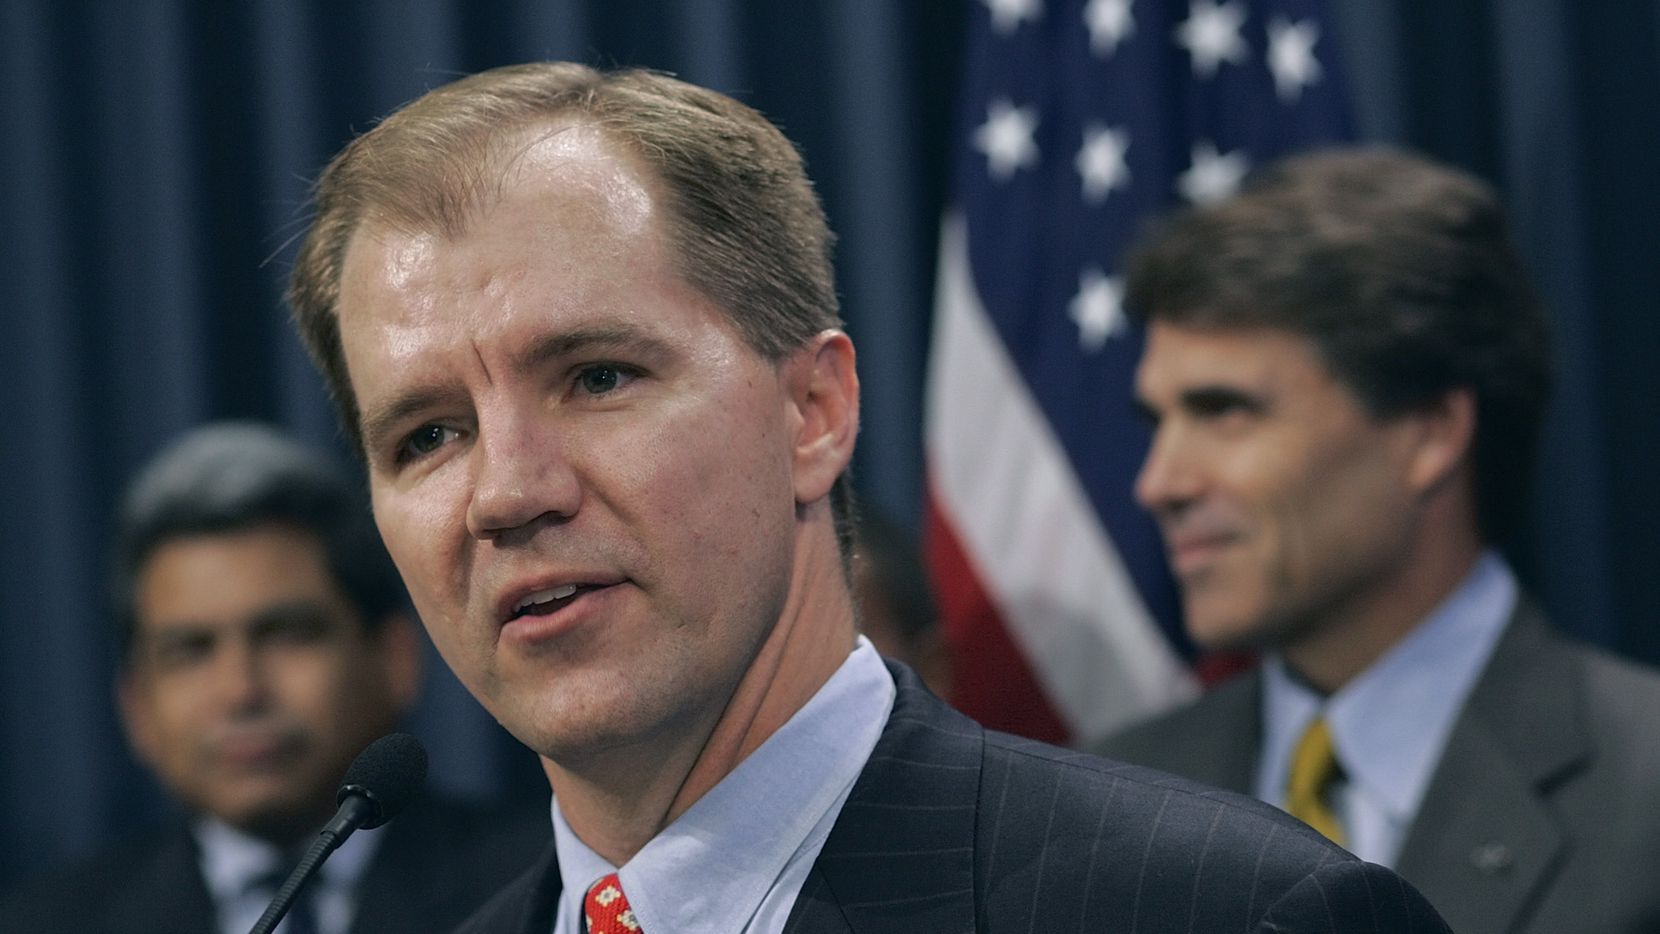 Justice Don Willett was appointed to the Texas Supreme Court by Texas Gov. Rick Perry in 2005.